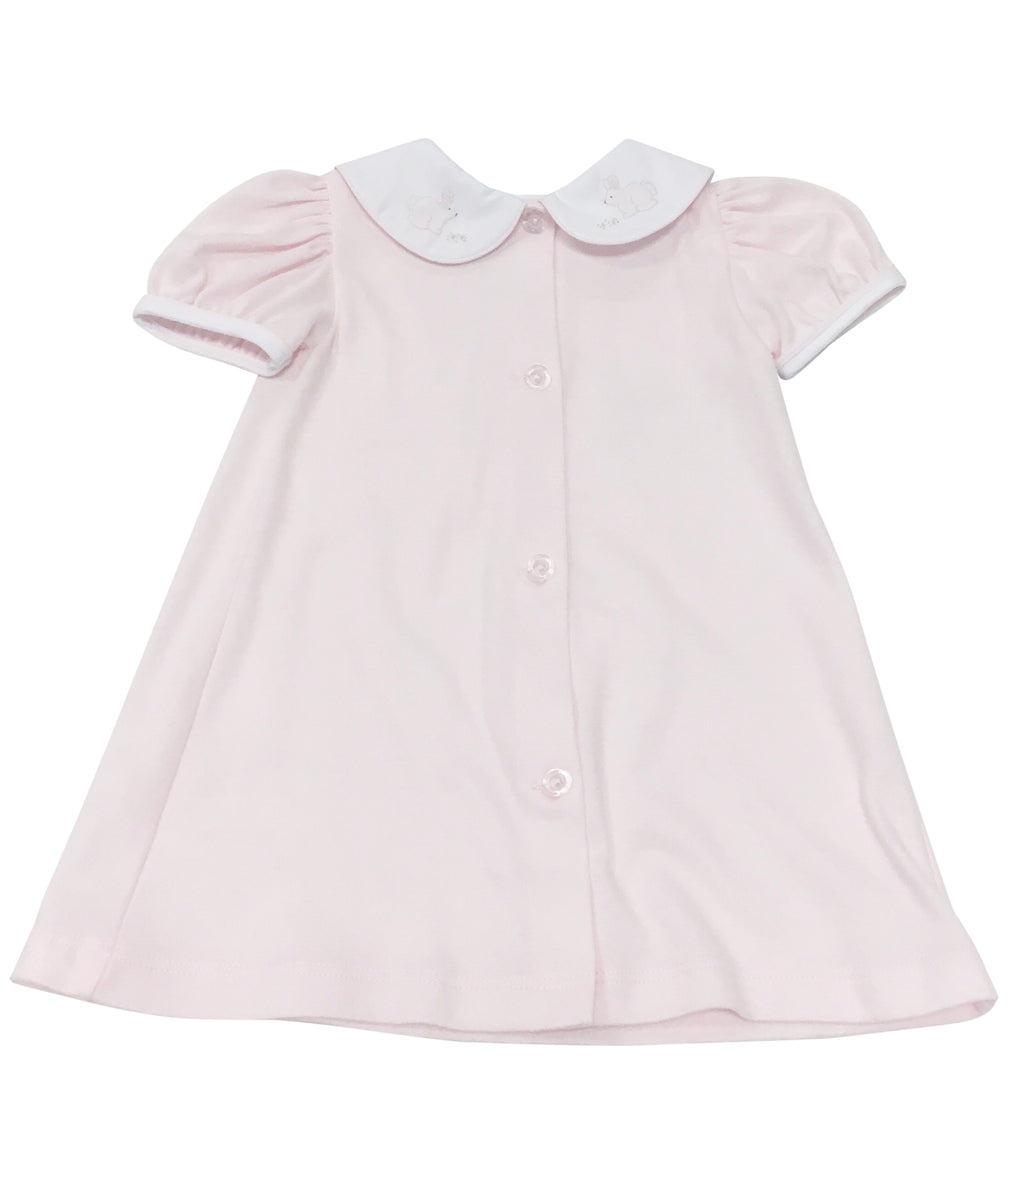 Auraluz Gown Pink Bunny - Born Childrens Boutique